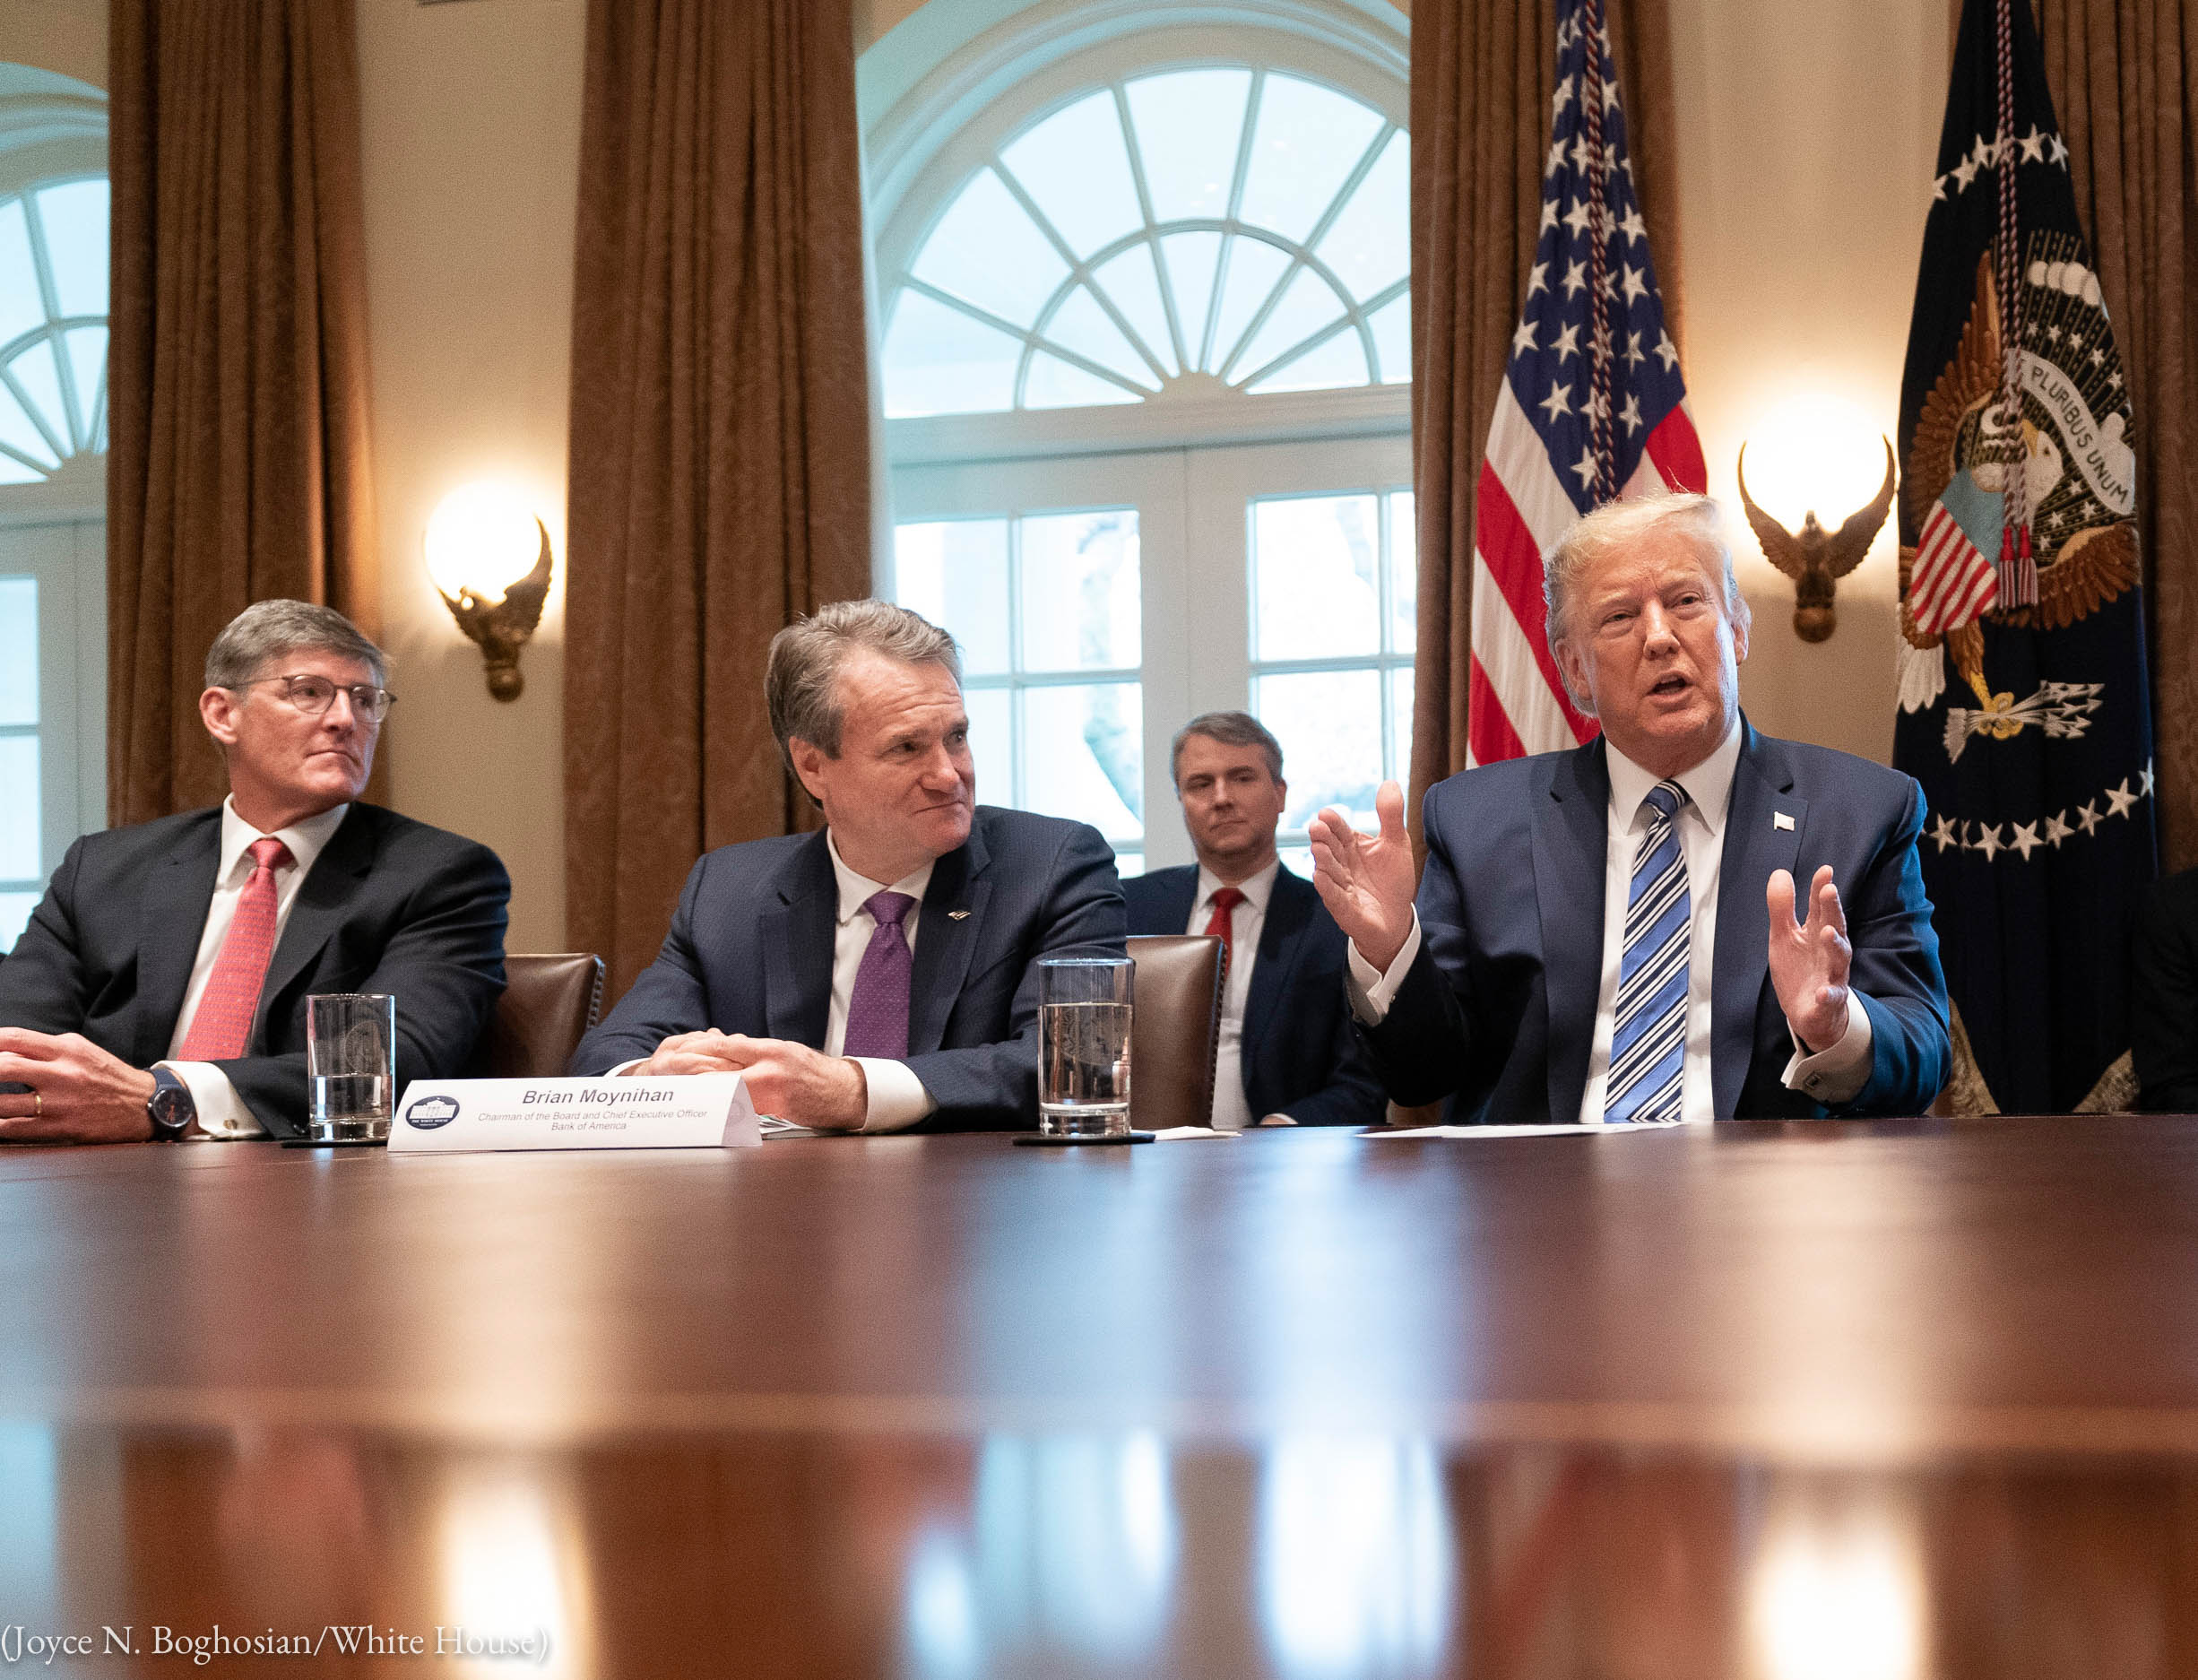 President Trump speaking at table with others listening (Joyce N. Boghosian/White House)